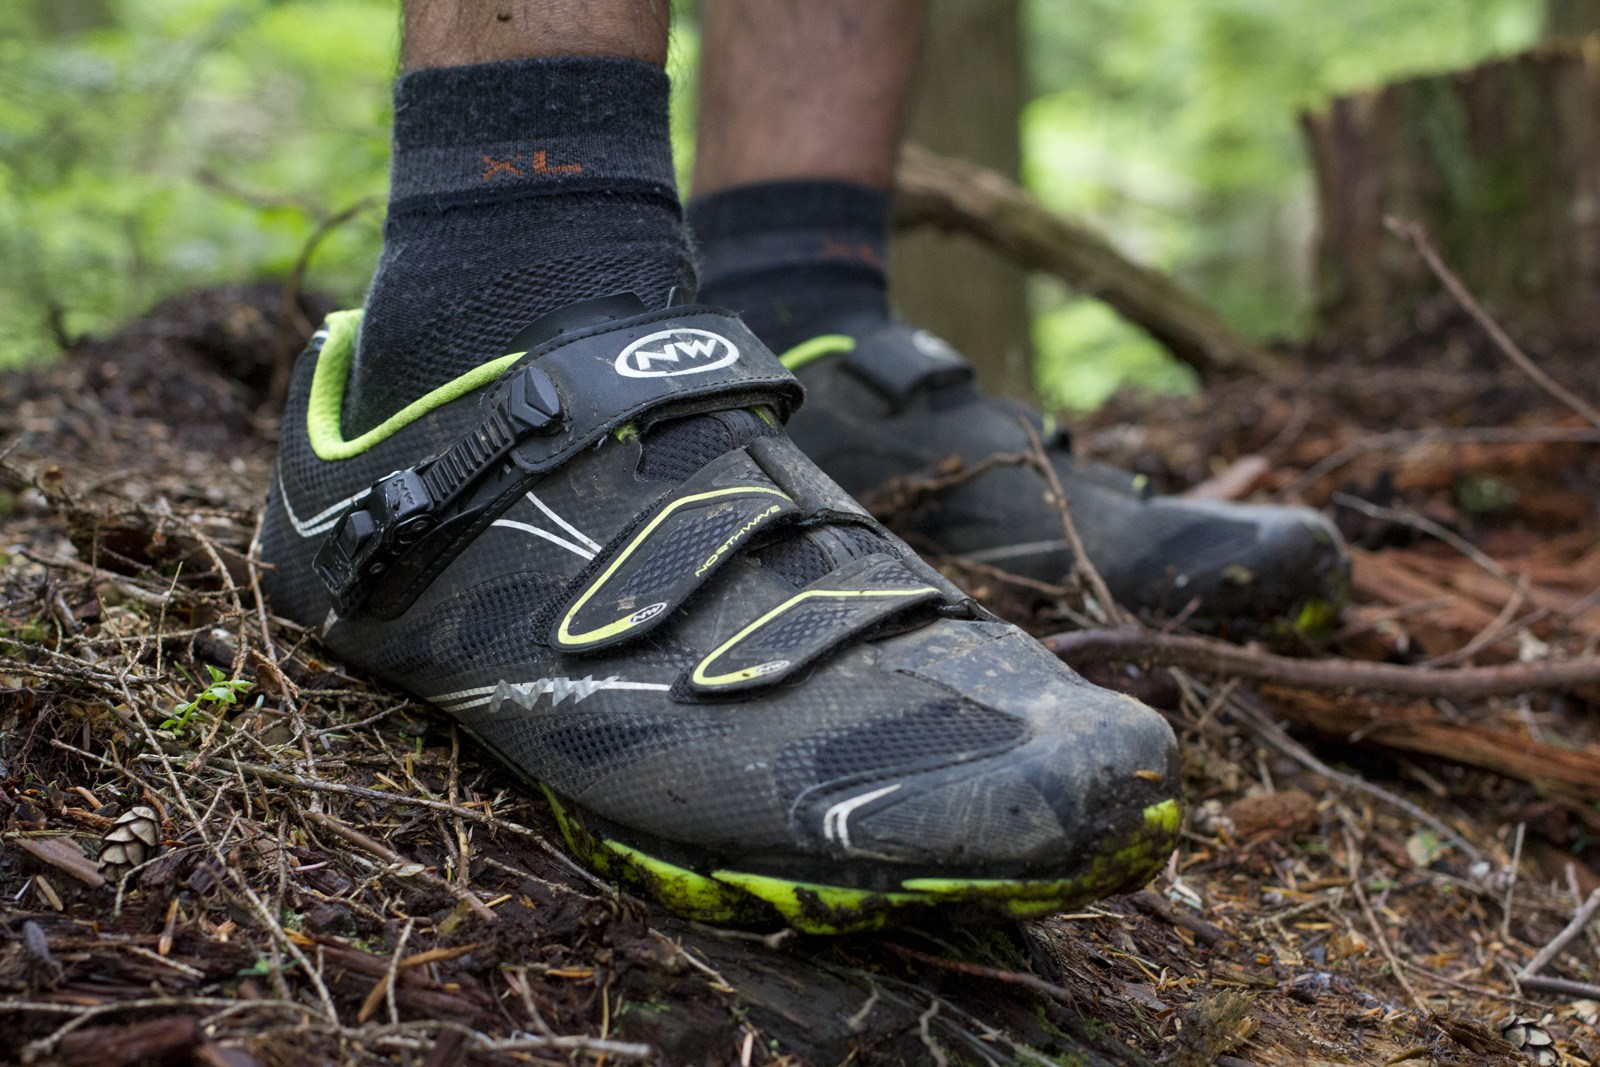 d23528f6b0f The Scorpius SRS trail shoe in black with neon green trim. If that's not  flashy enough for you, it also comes in white, red and orange.